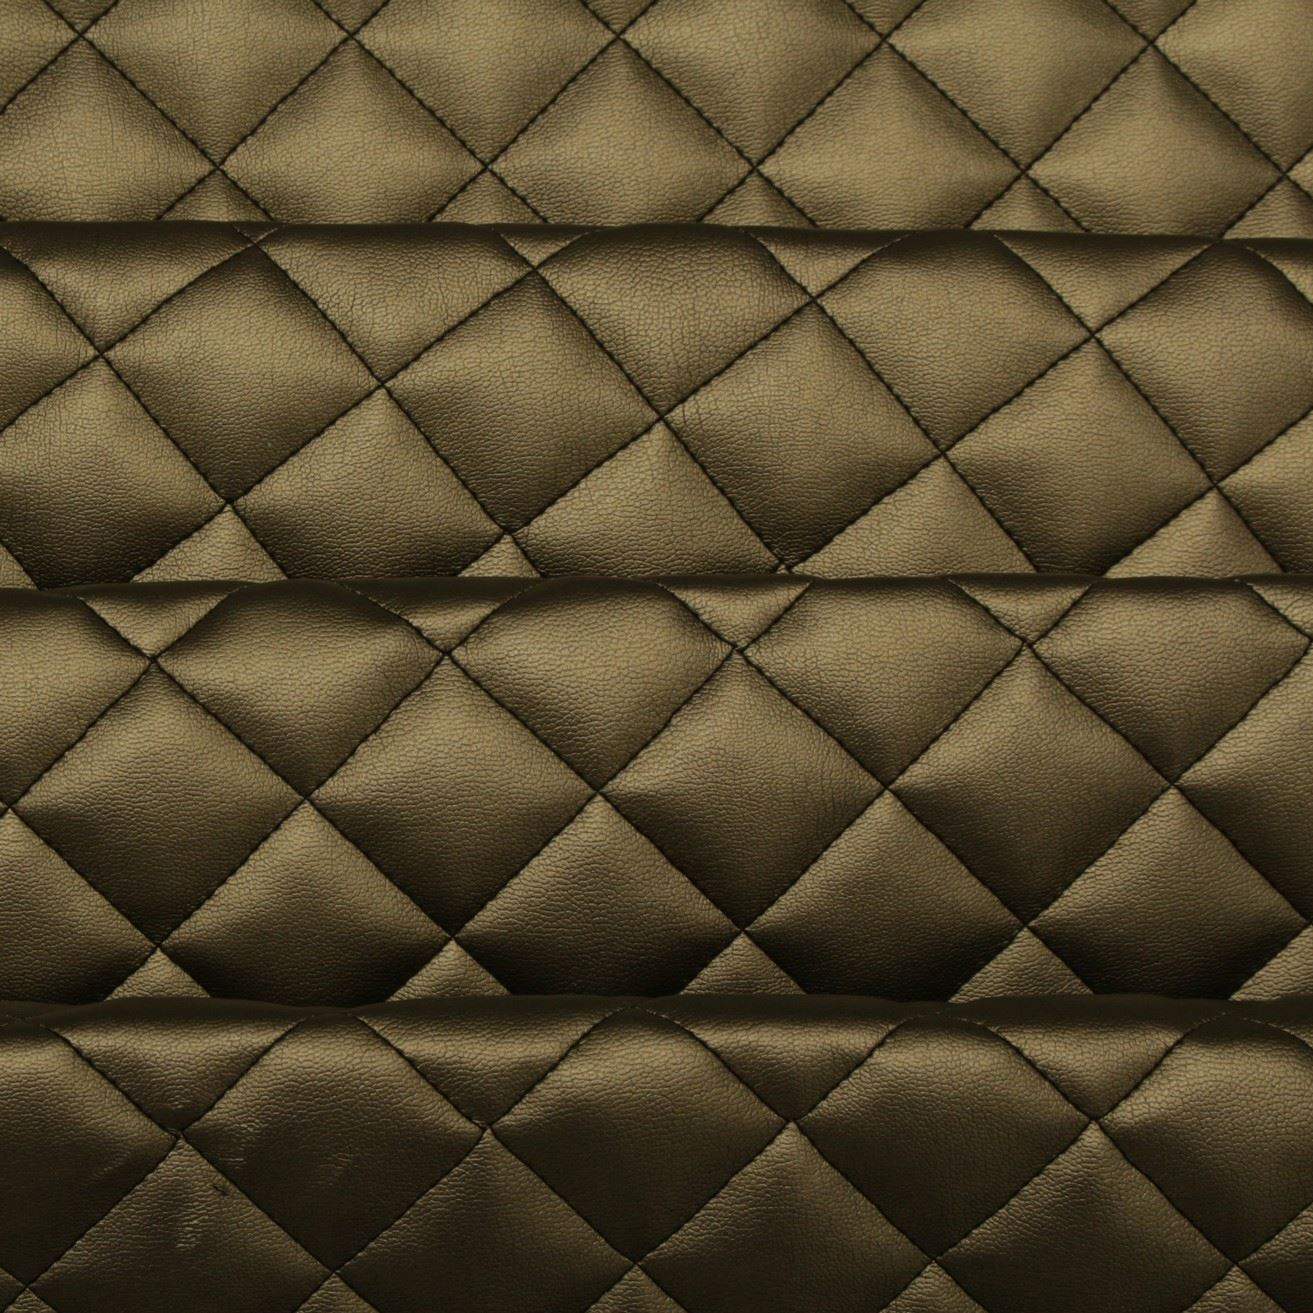 Leather cushion texture - Quilted Leather Diamond Padded Cushion Faux Leather Interior